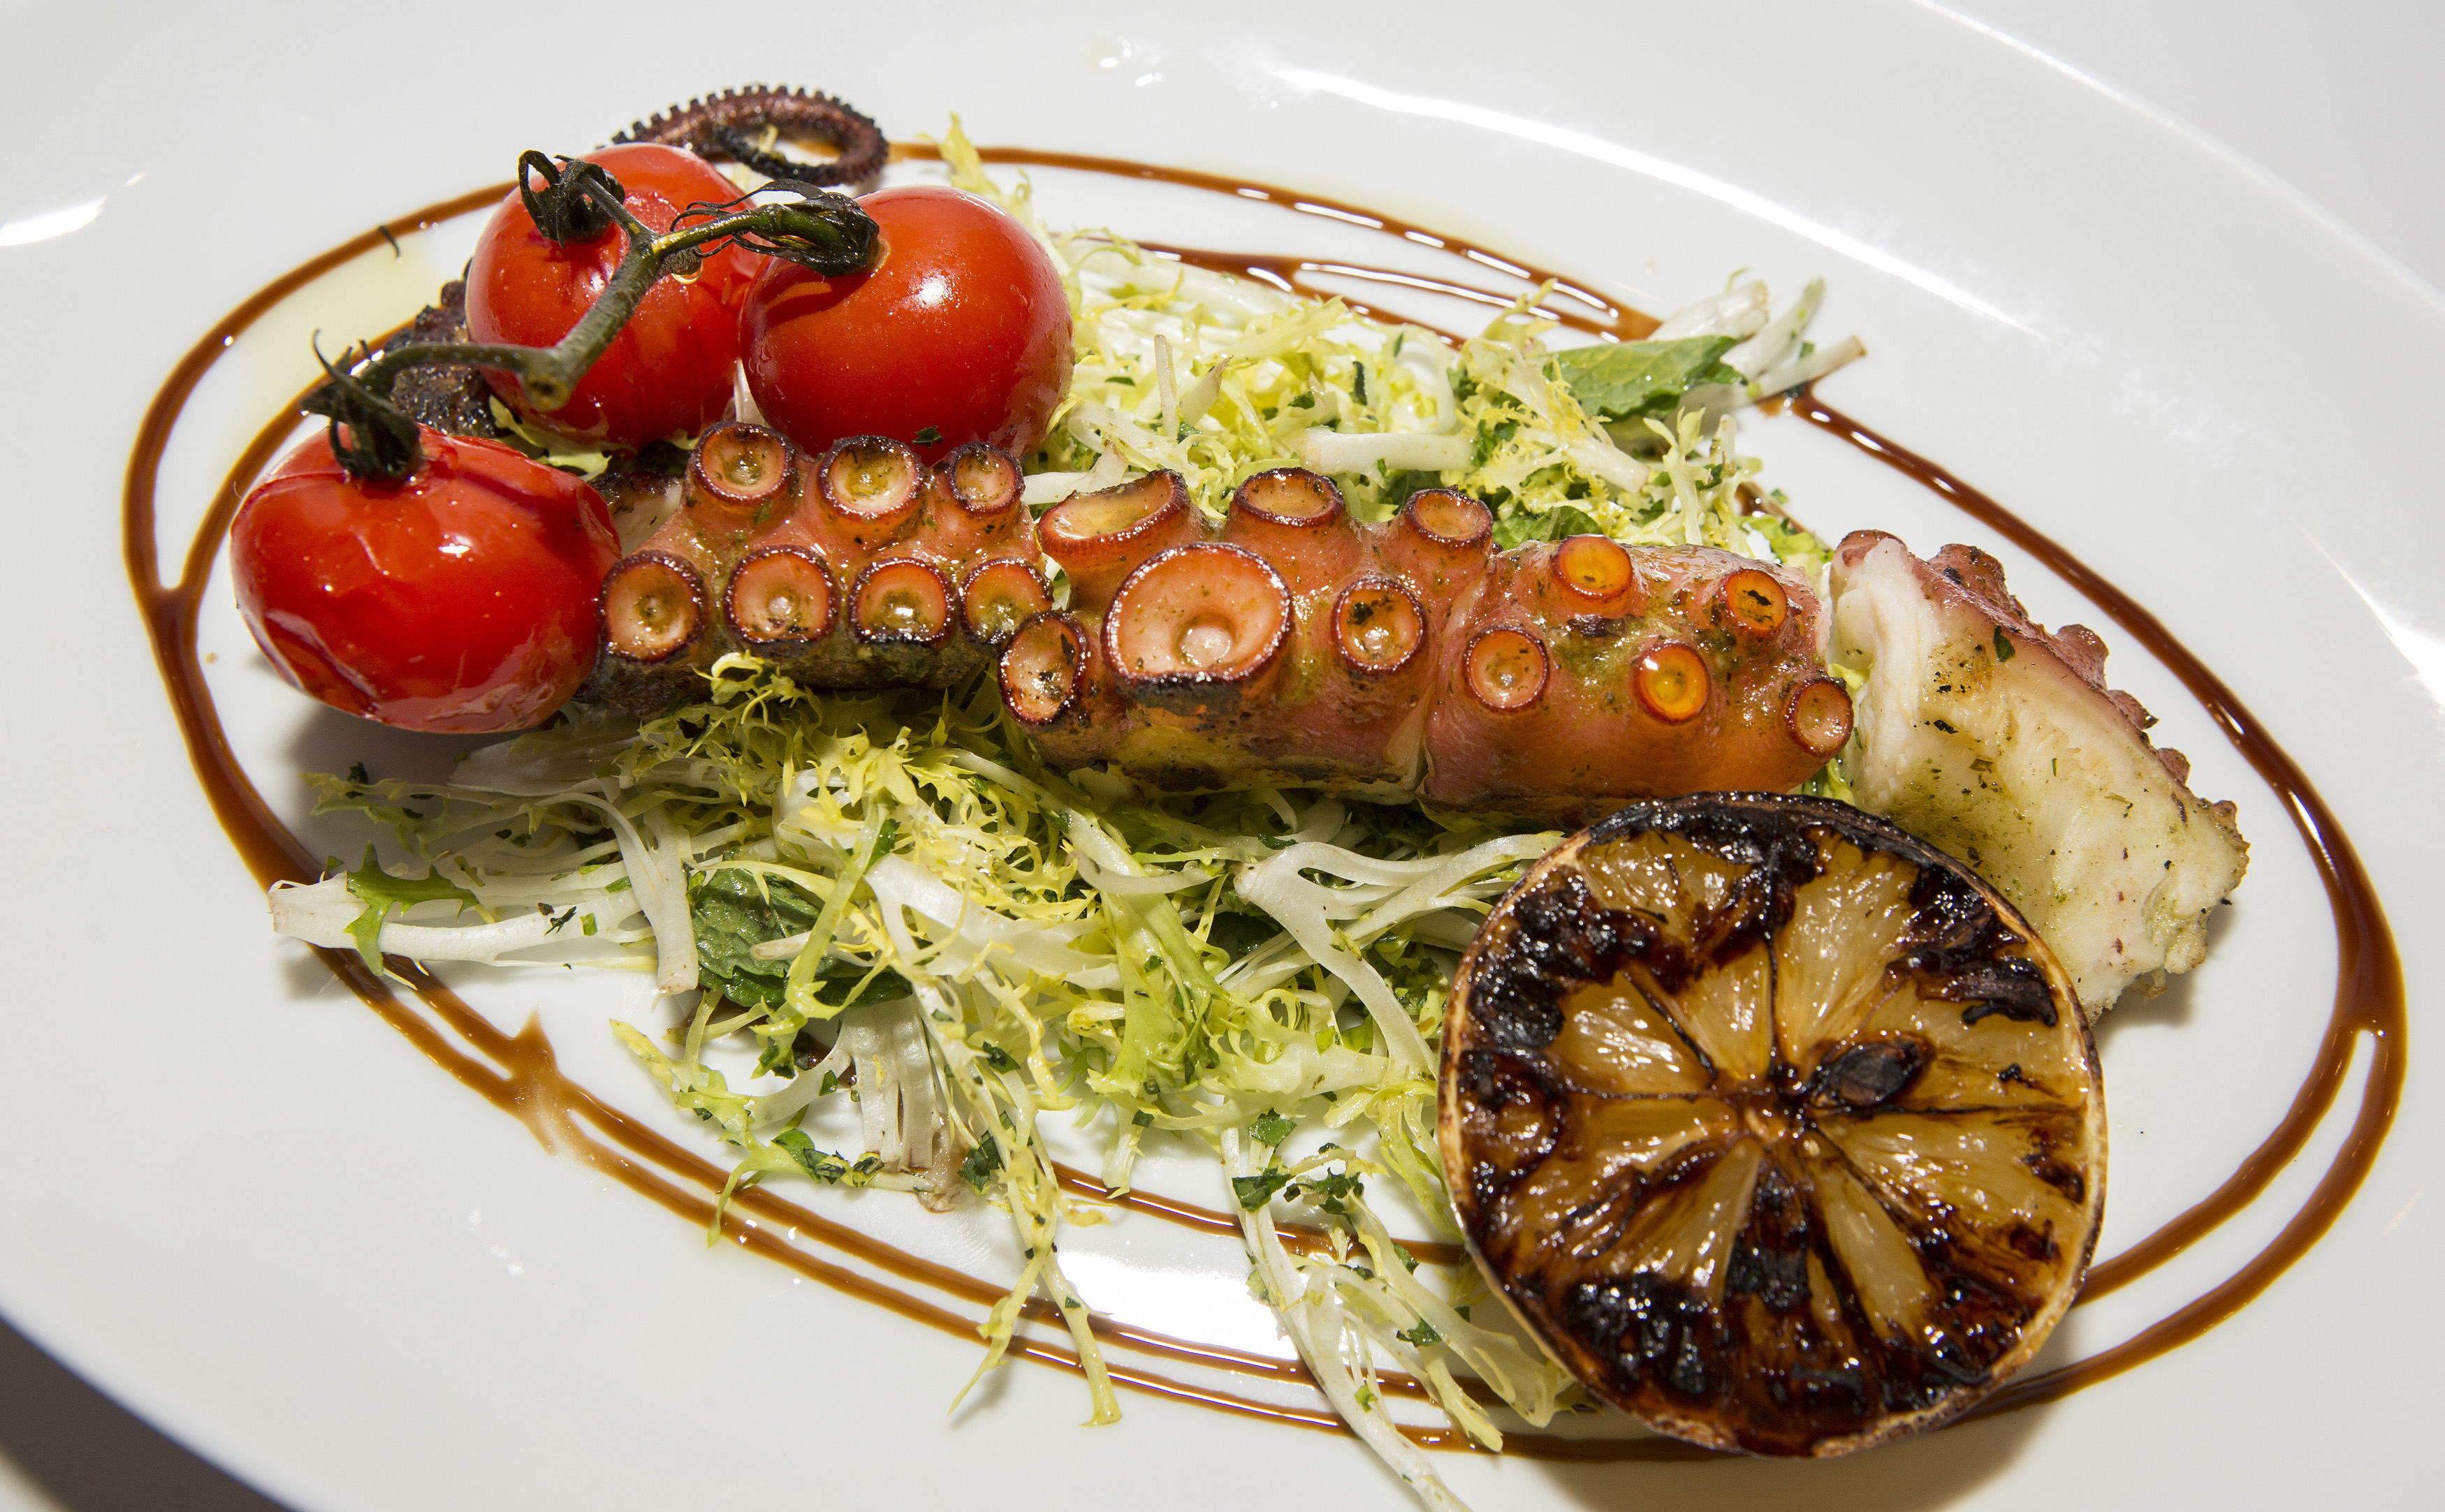 A large grilled octopus tentacle on a white plate with tomatoes and frisee.